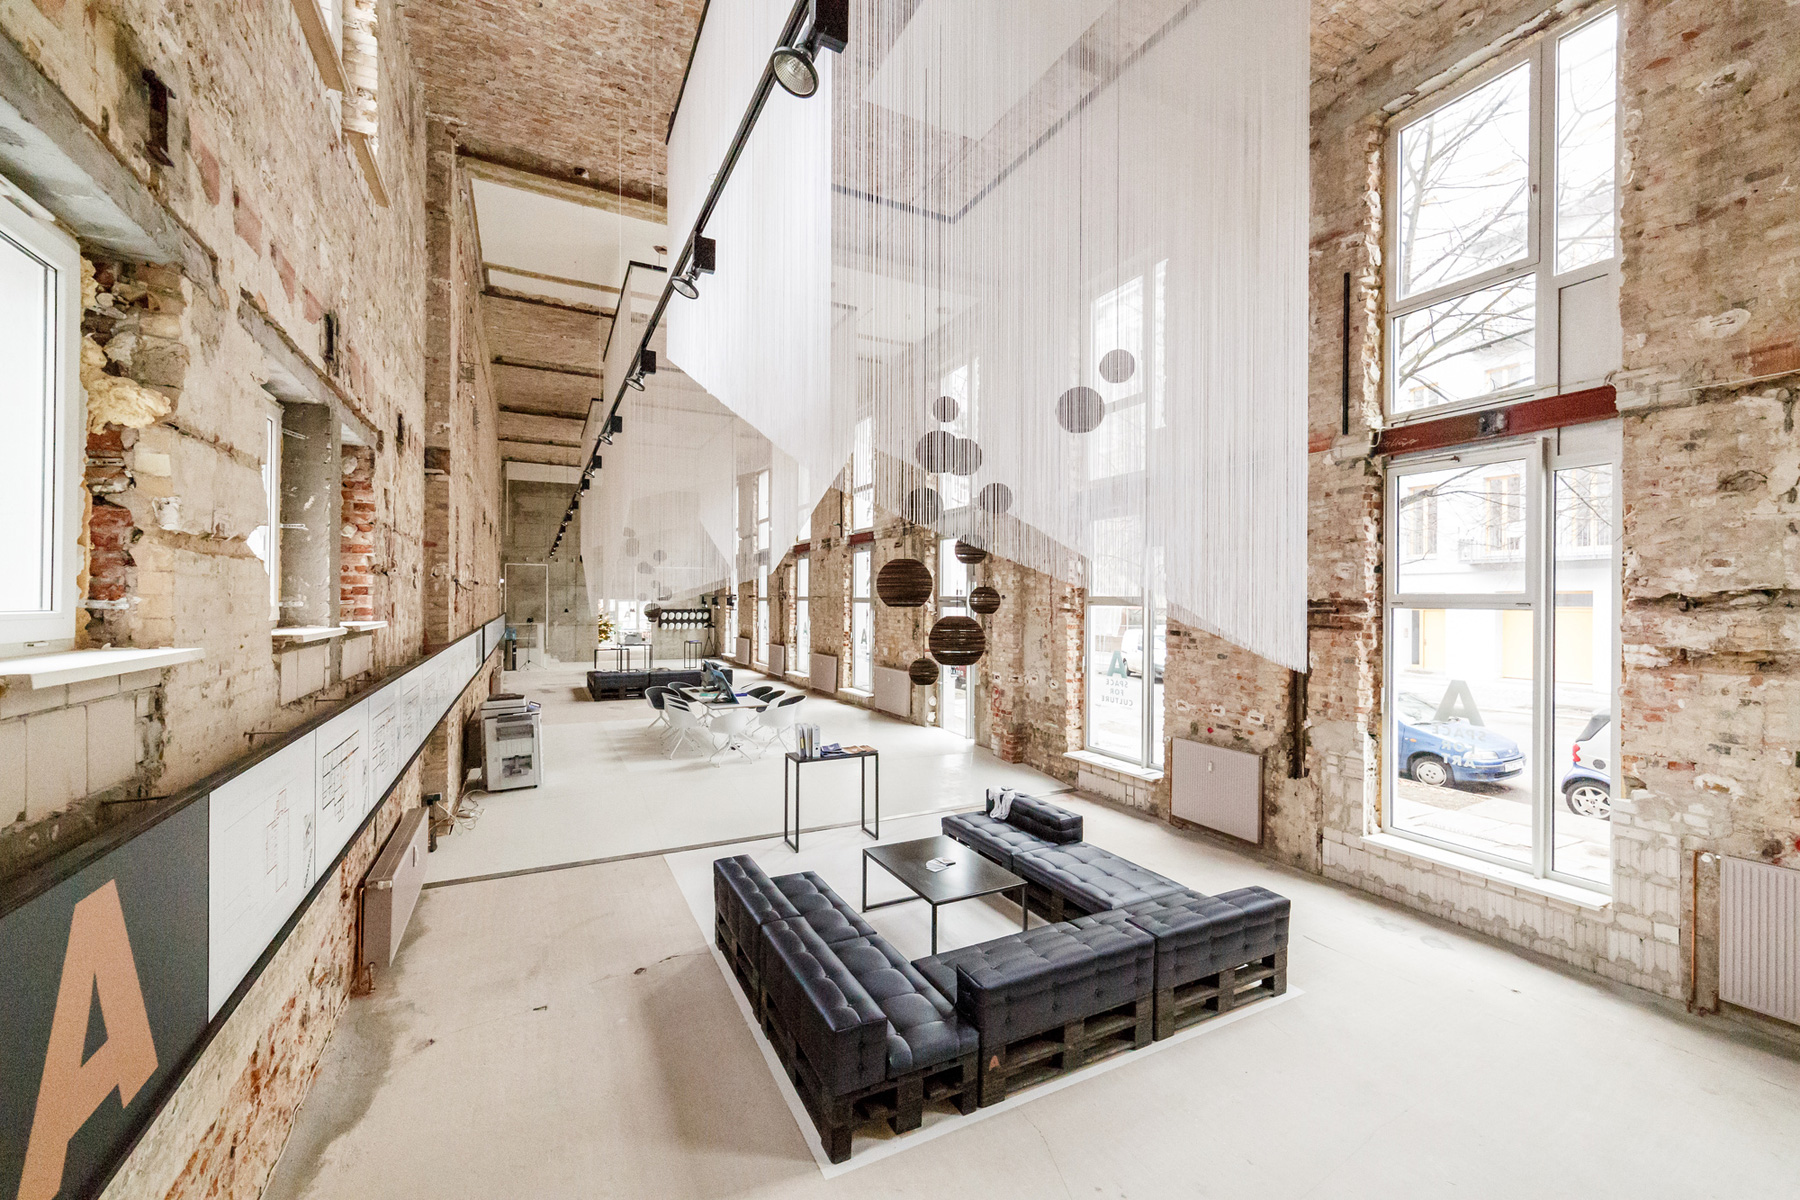 Space - Temporary Show / Plajer & Franz Studio (18)